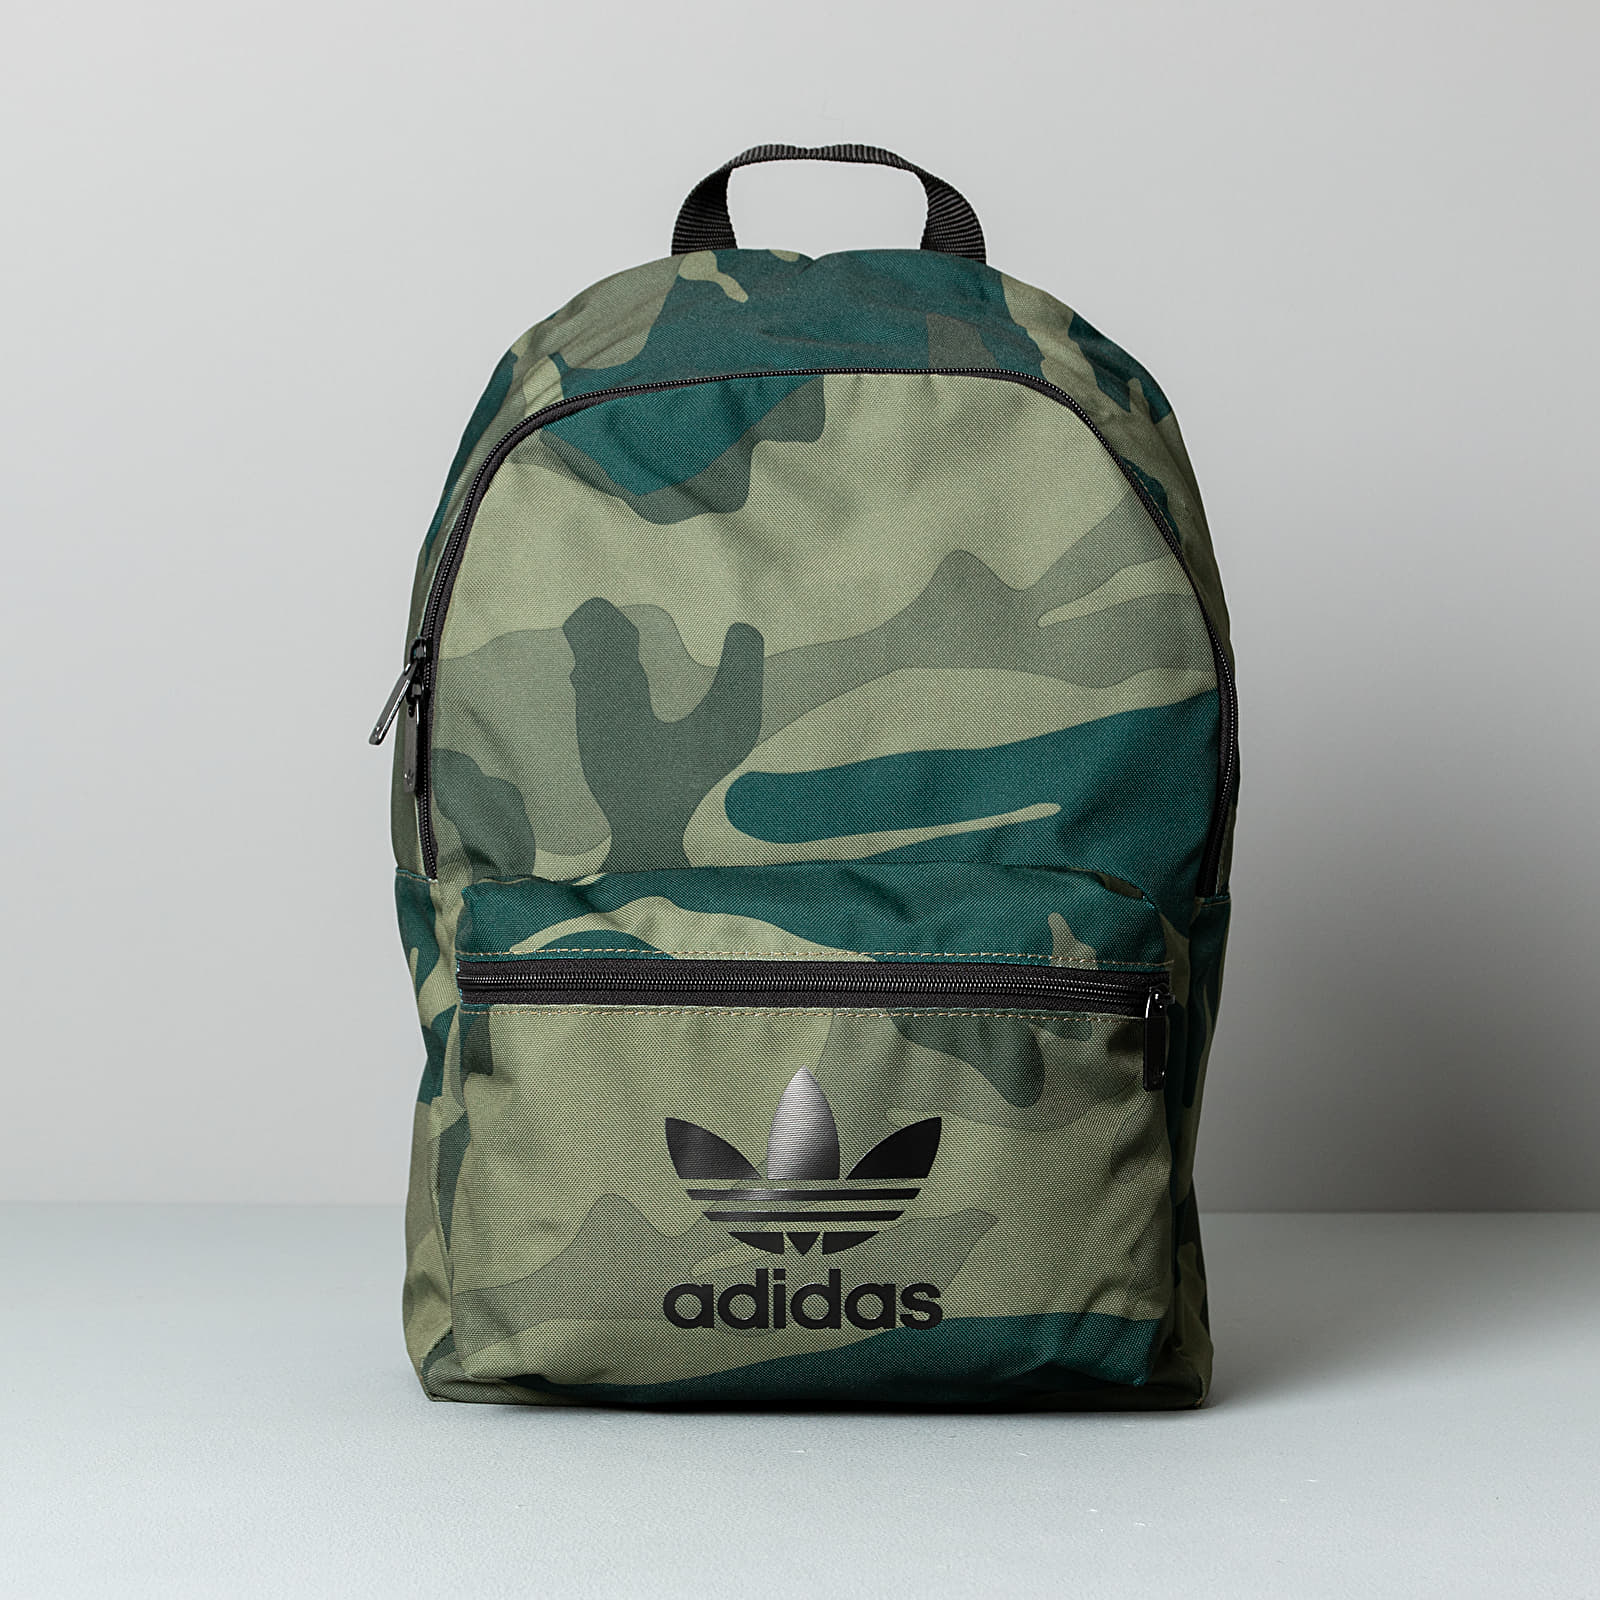 adidas Cam Classic Backpack